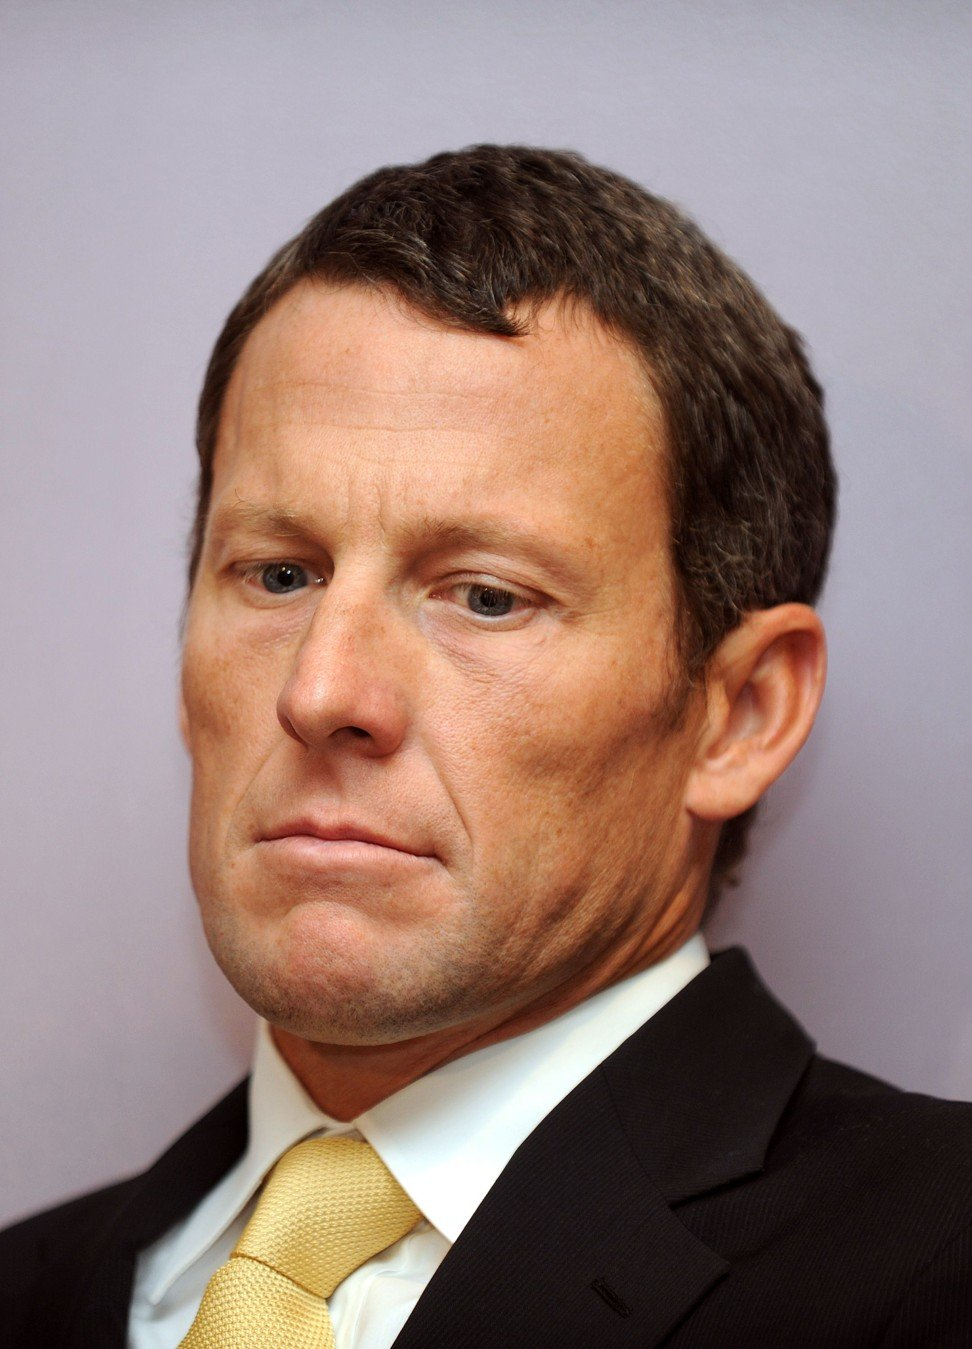 Cyclist Lance Armstrong is infamous for his doping. Cycling's drug issues were systemic. We can only assume trail running is clean. Photo: Agence France-Presse